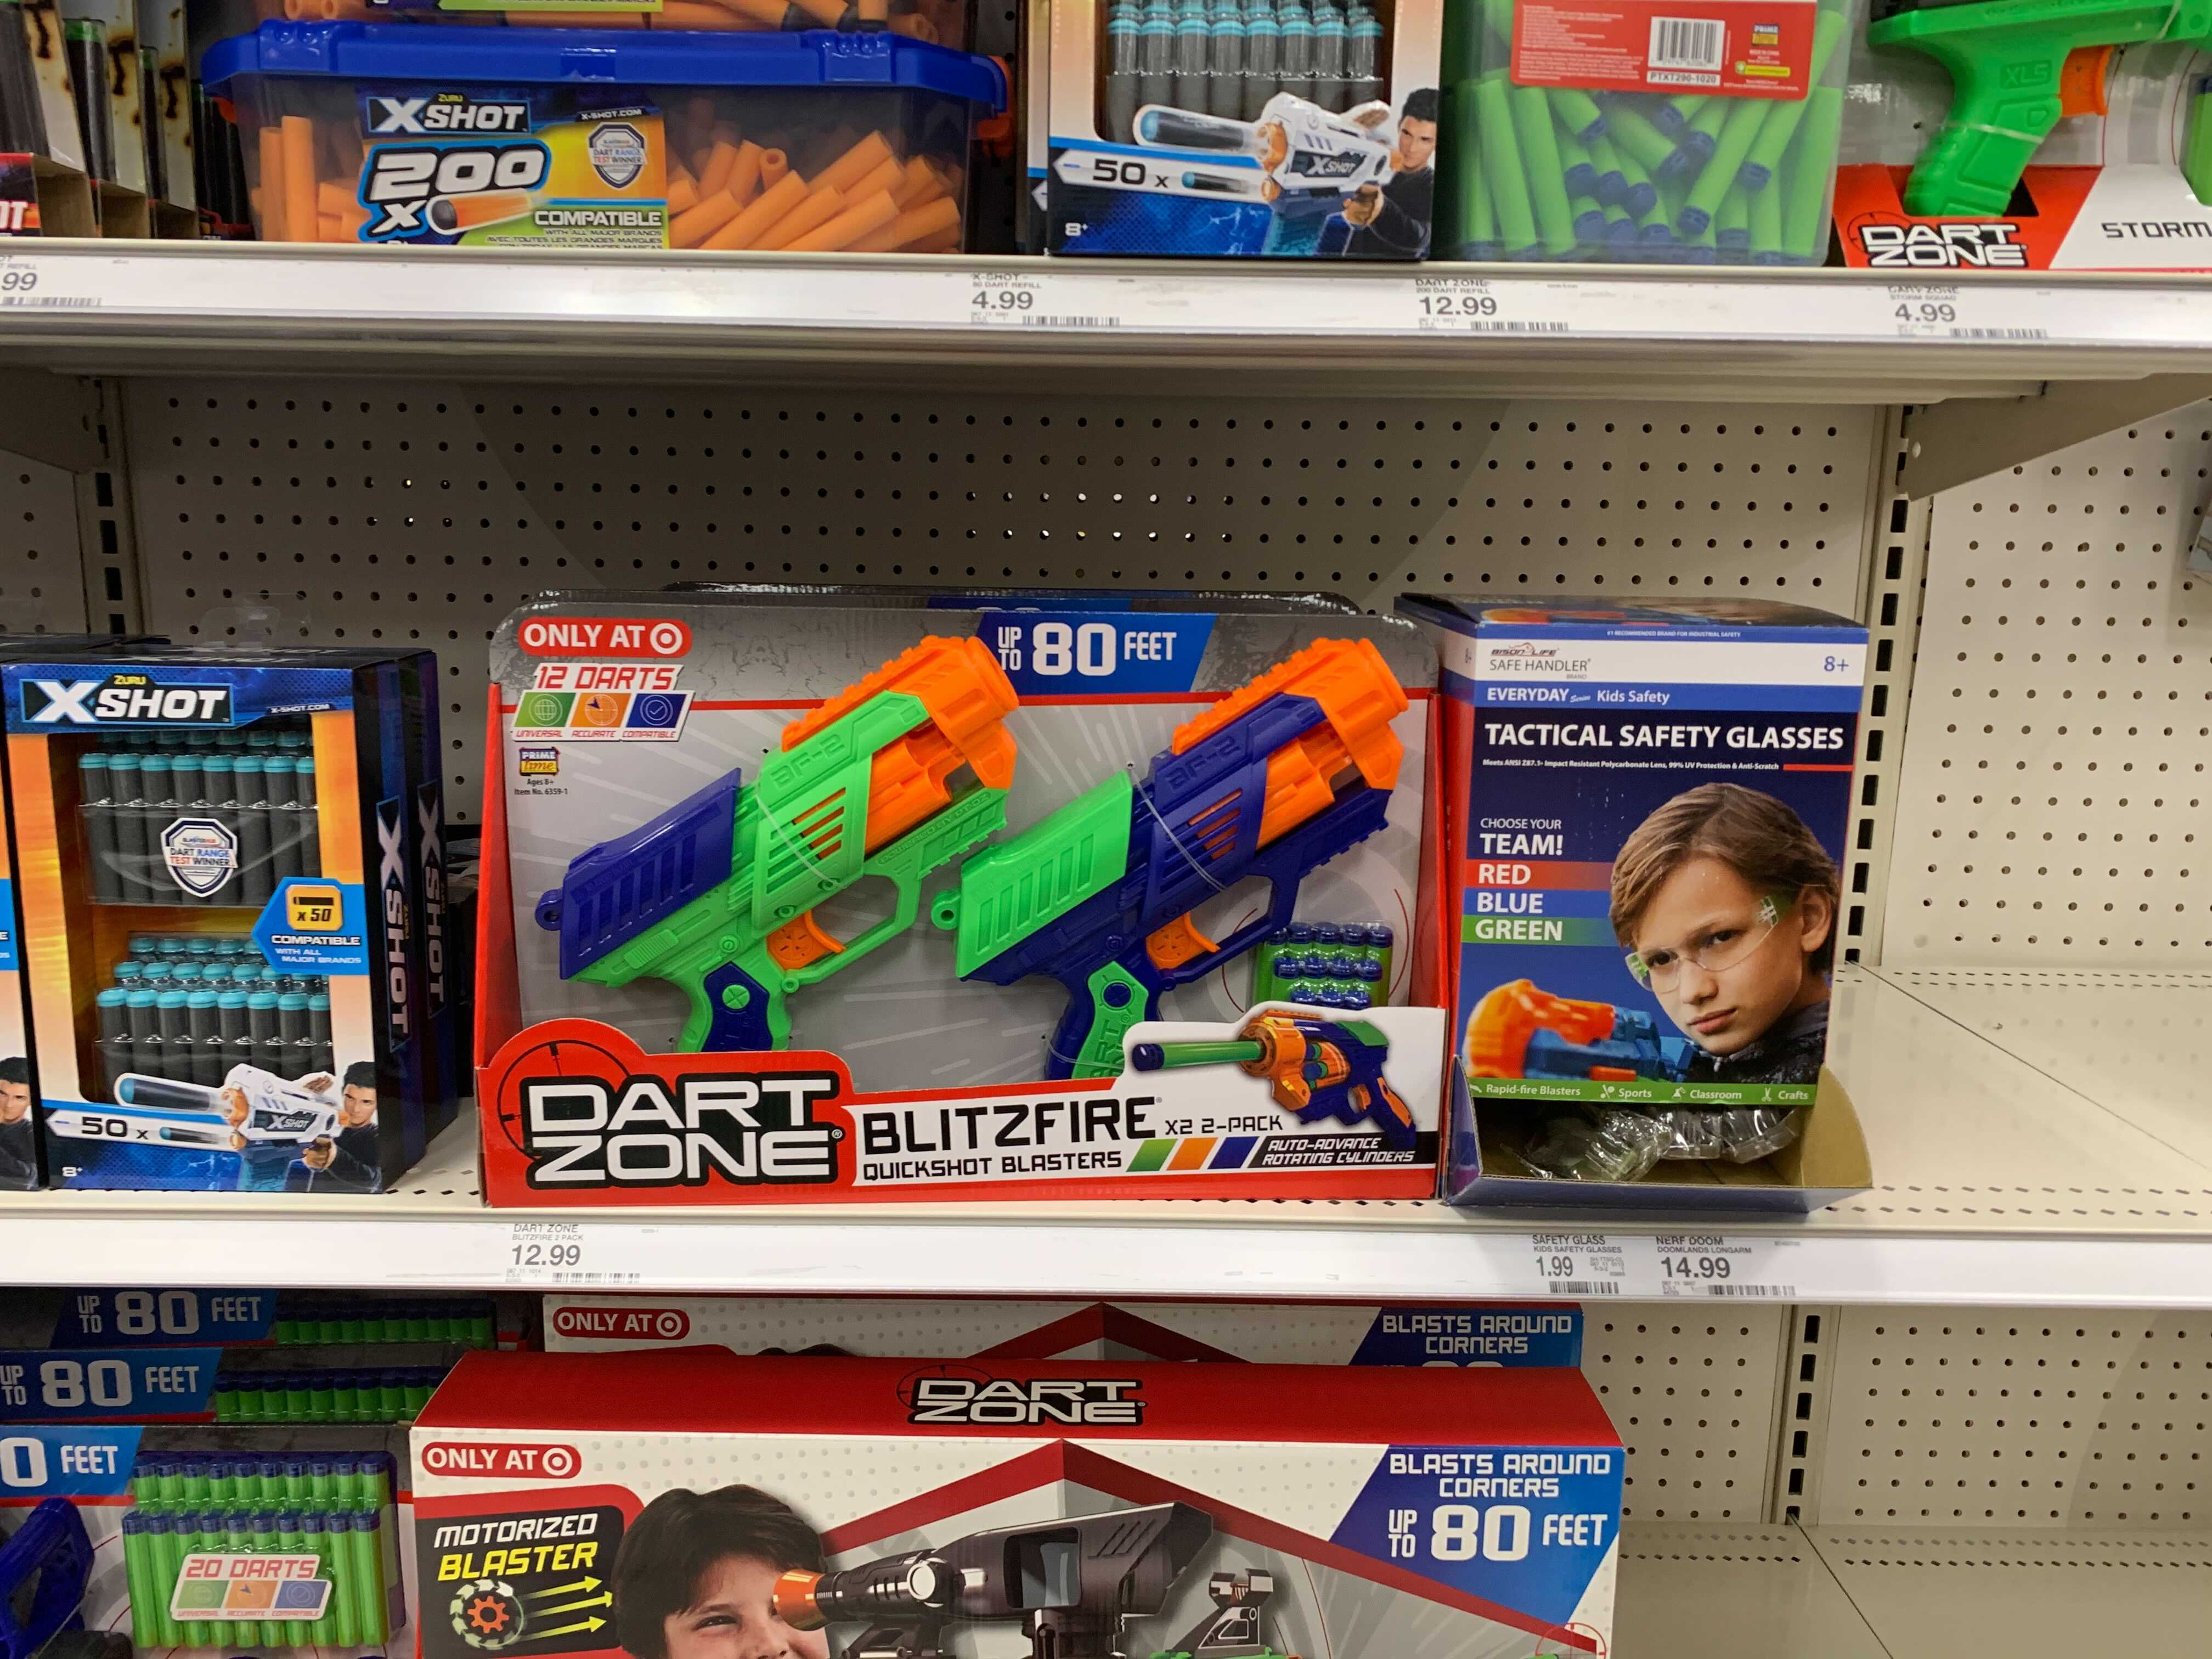 Bison Life's Everyday Series for Ages 8+ is Available in Target Across 280 Stores